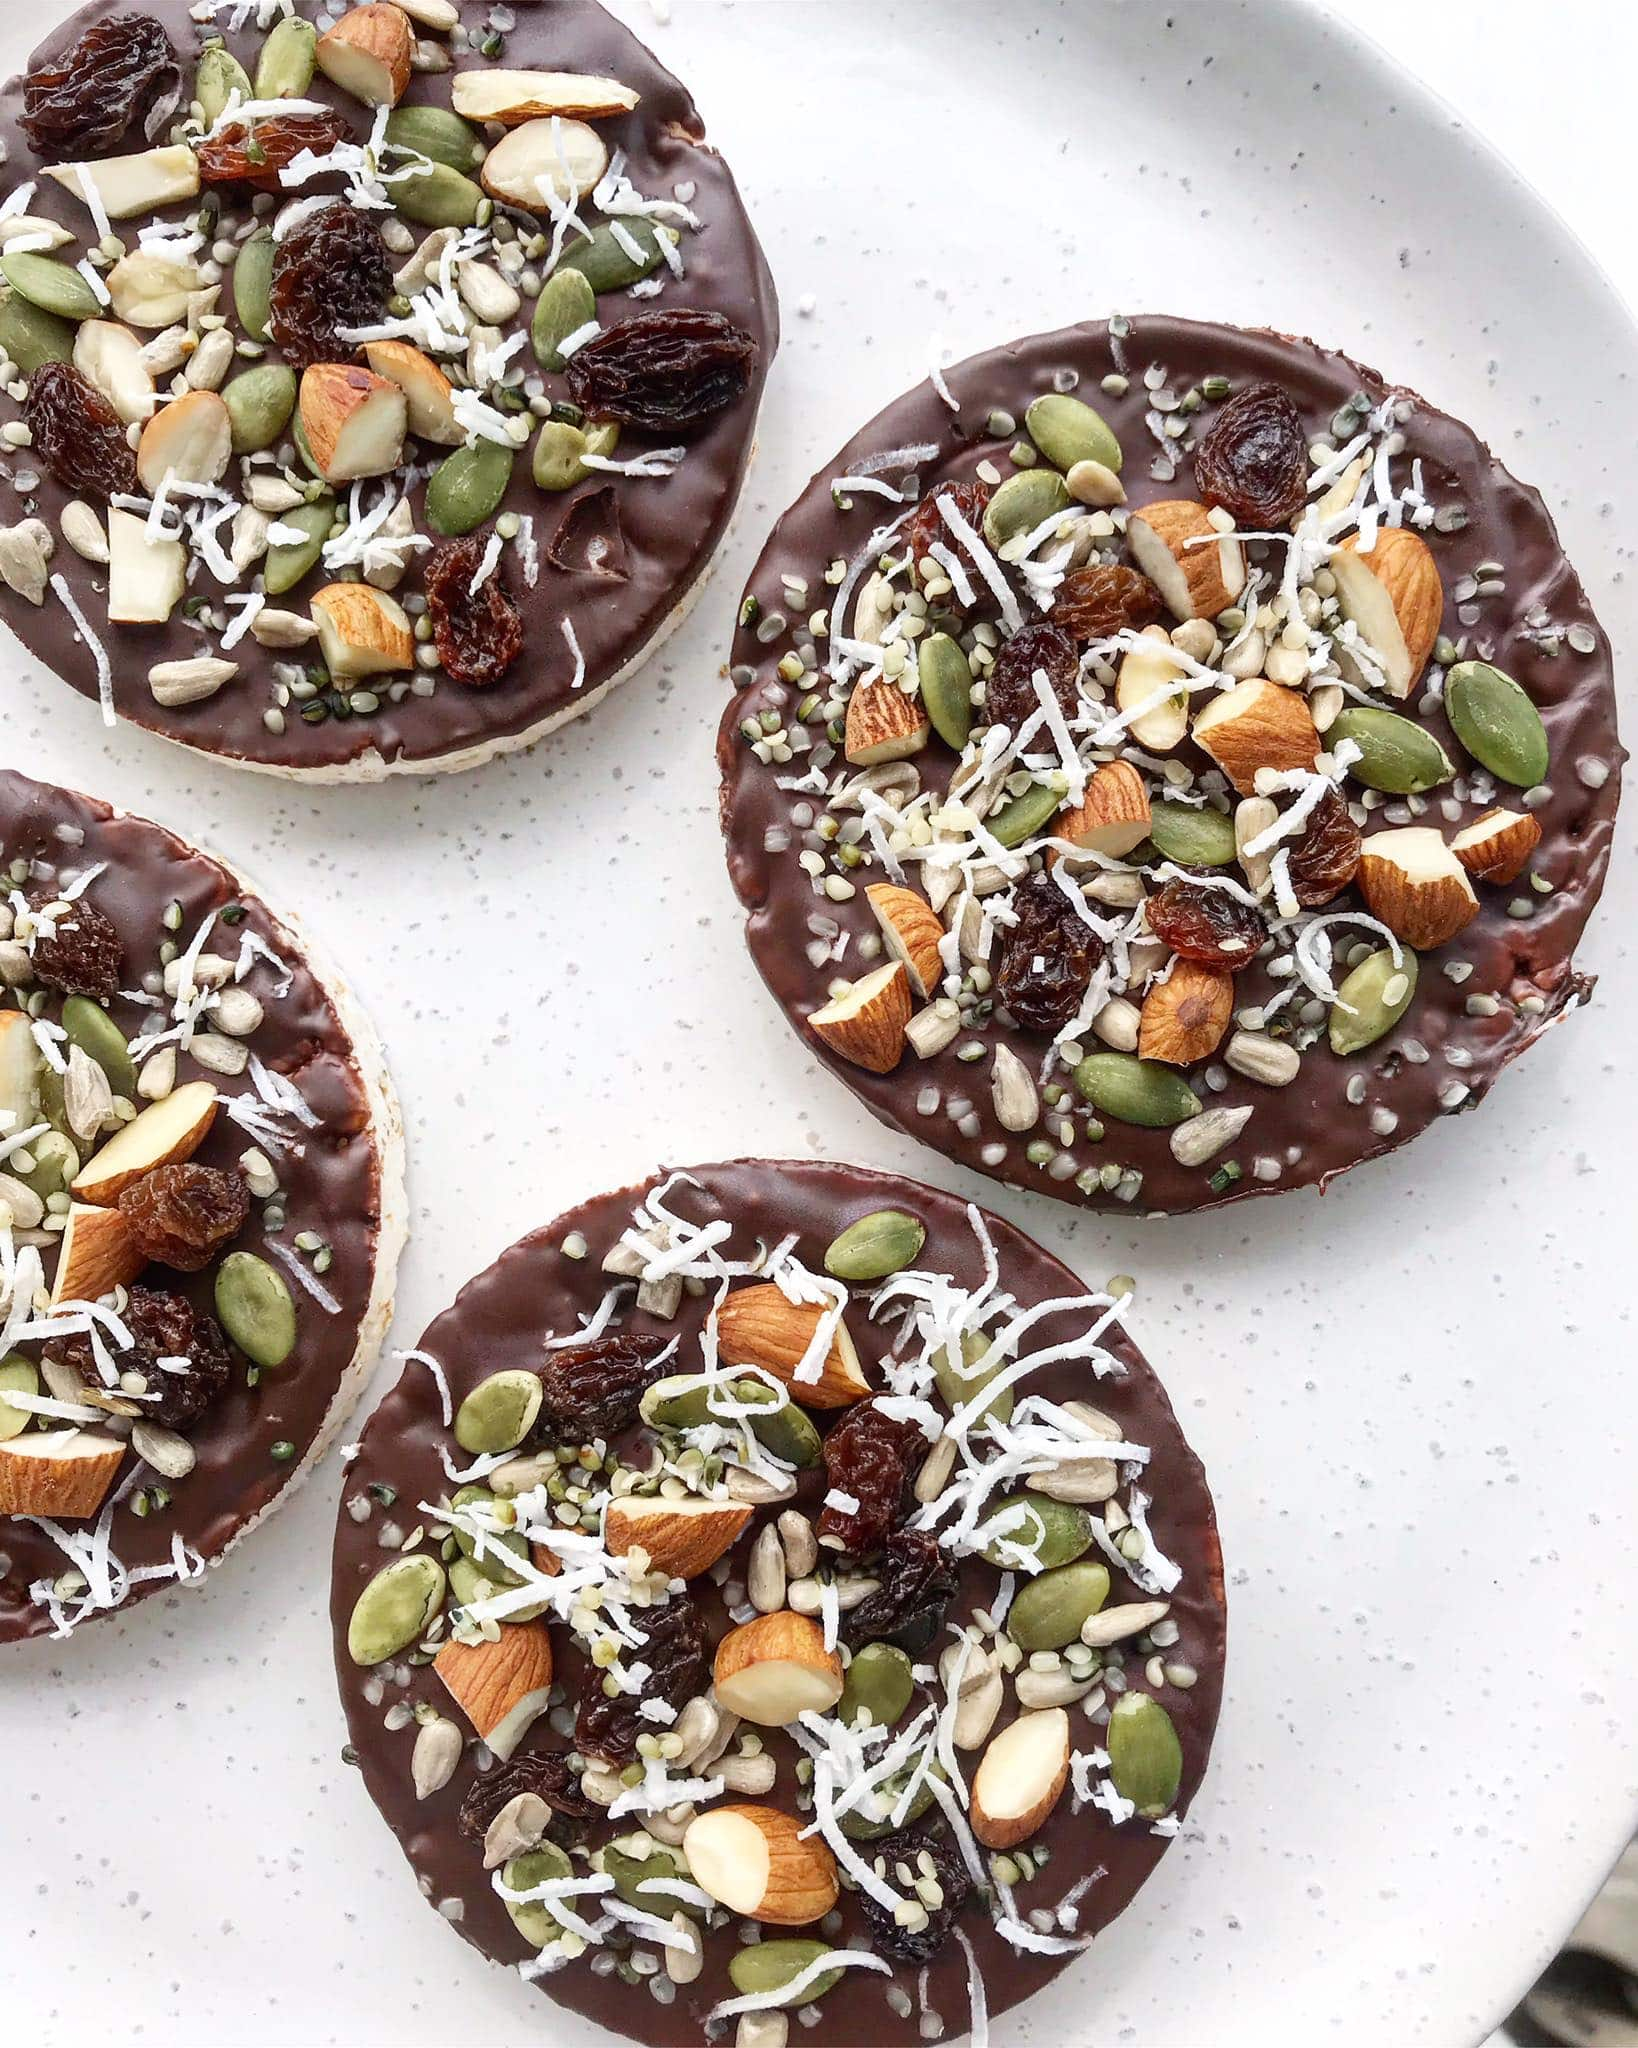 Rice cakes topped with chocolate and sprinkled with a mixture of nuts, seeds, dried fruit and coconut.